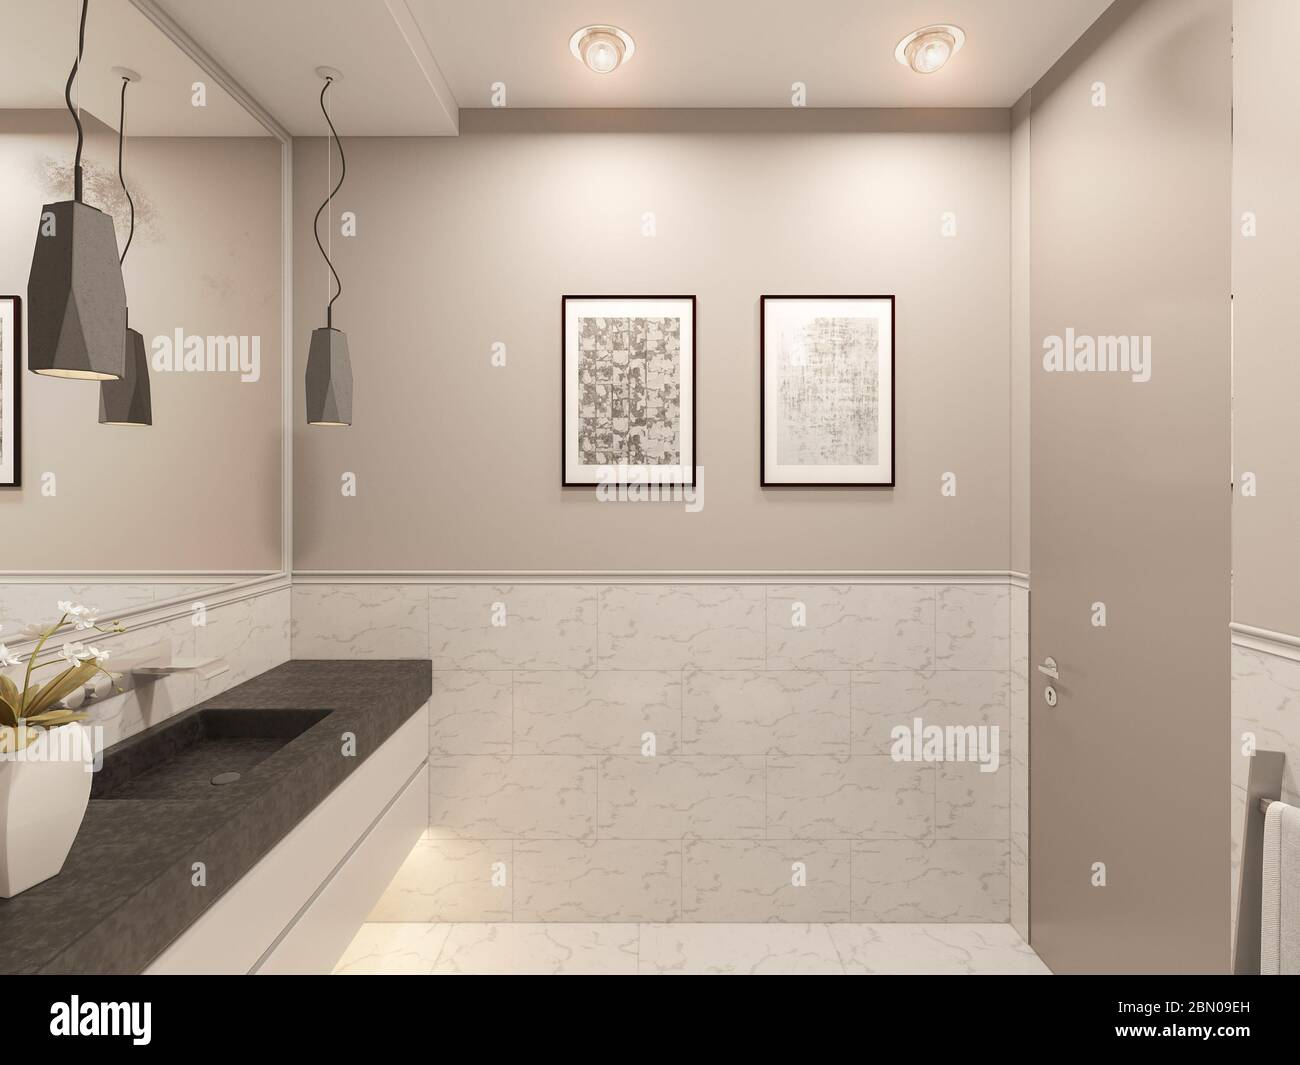 3d Render Interior Of The Toilet In A Private Cottage Toilet Interior Design Illustration In Traditional Modern American Style Bathroom Design Stock Photo Alamy